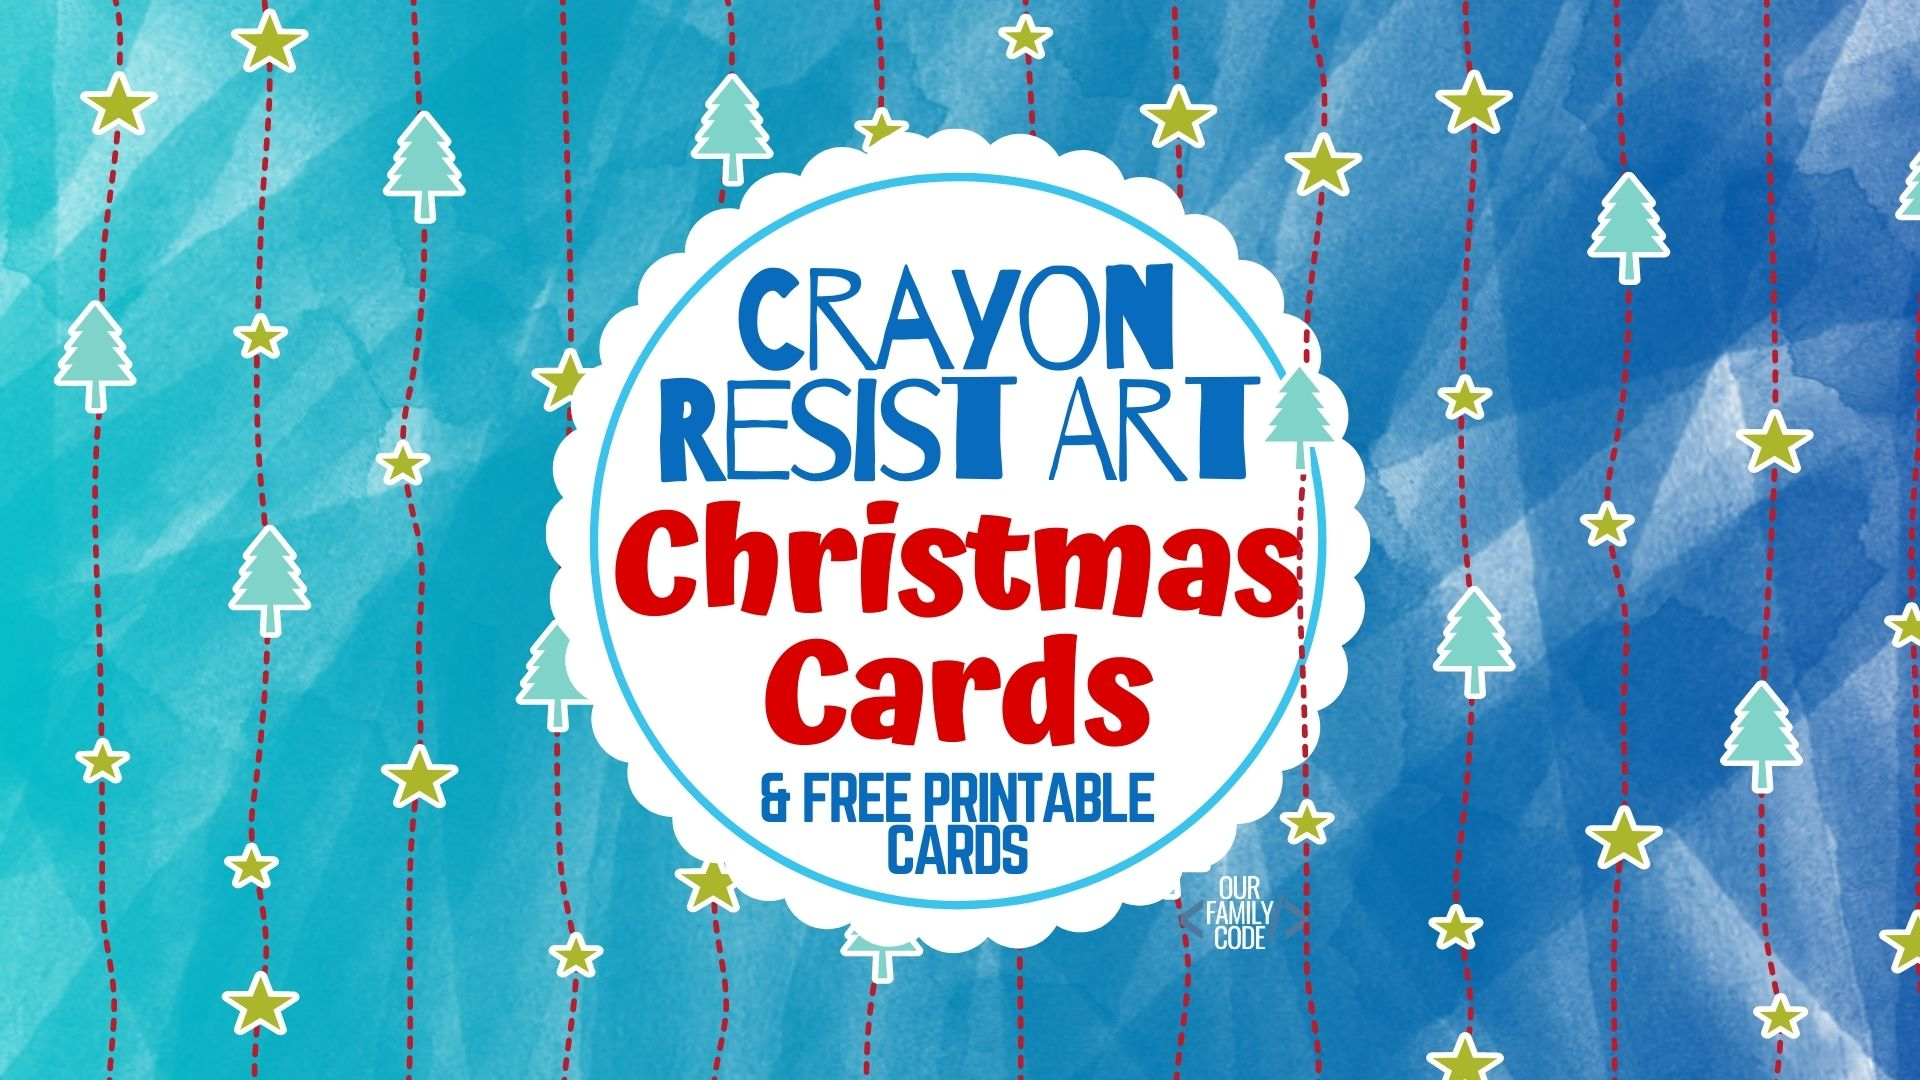 Crayon Resist Art Christmas Cards STEAM Holiday Activity for Kids